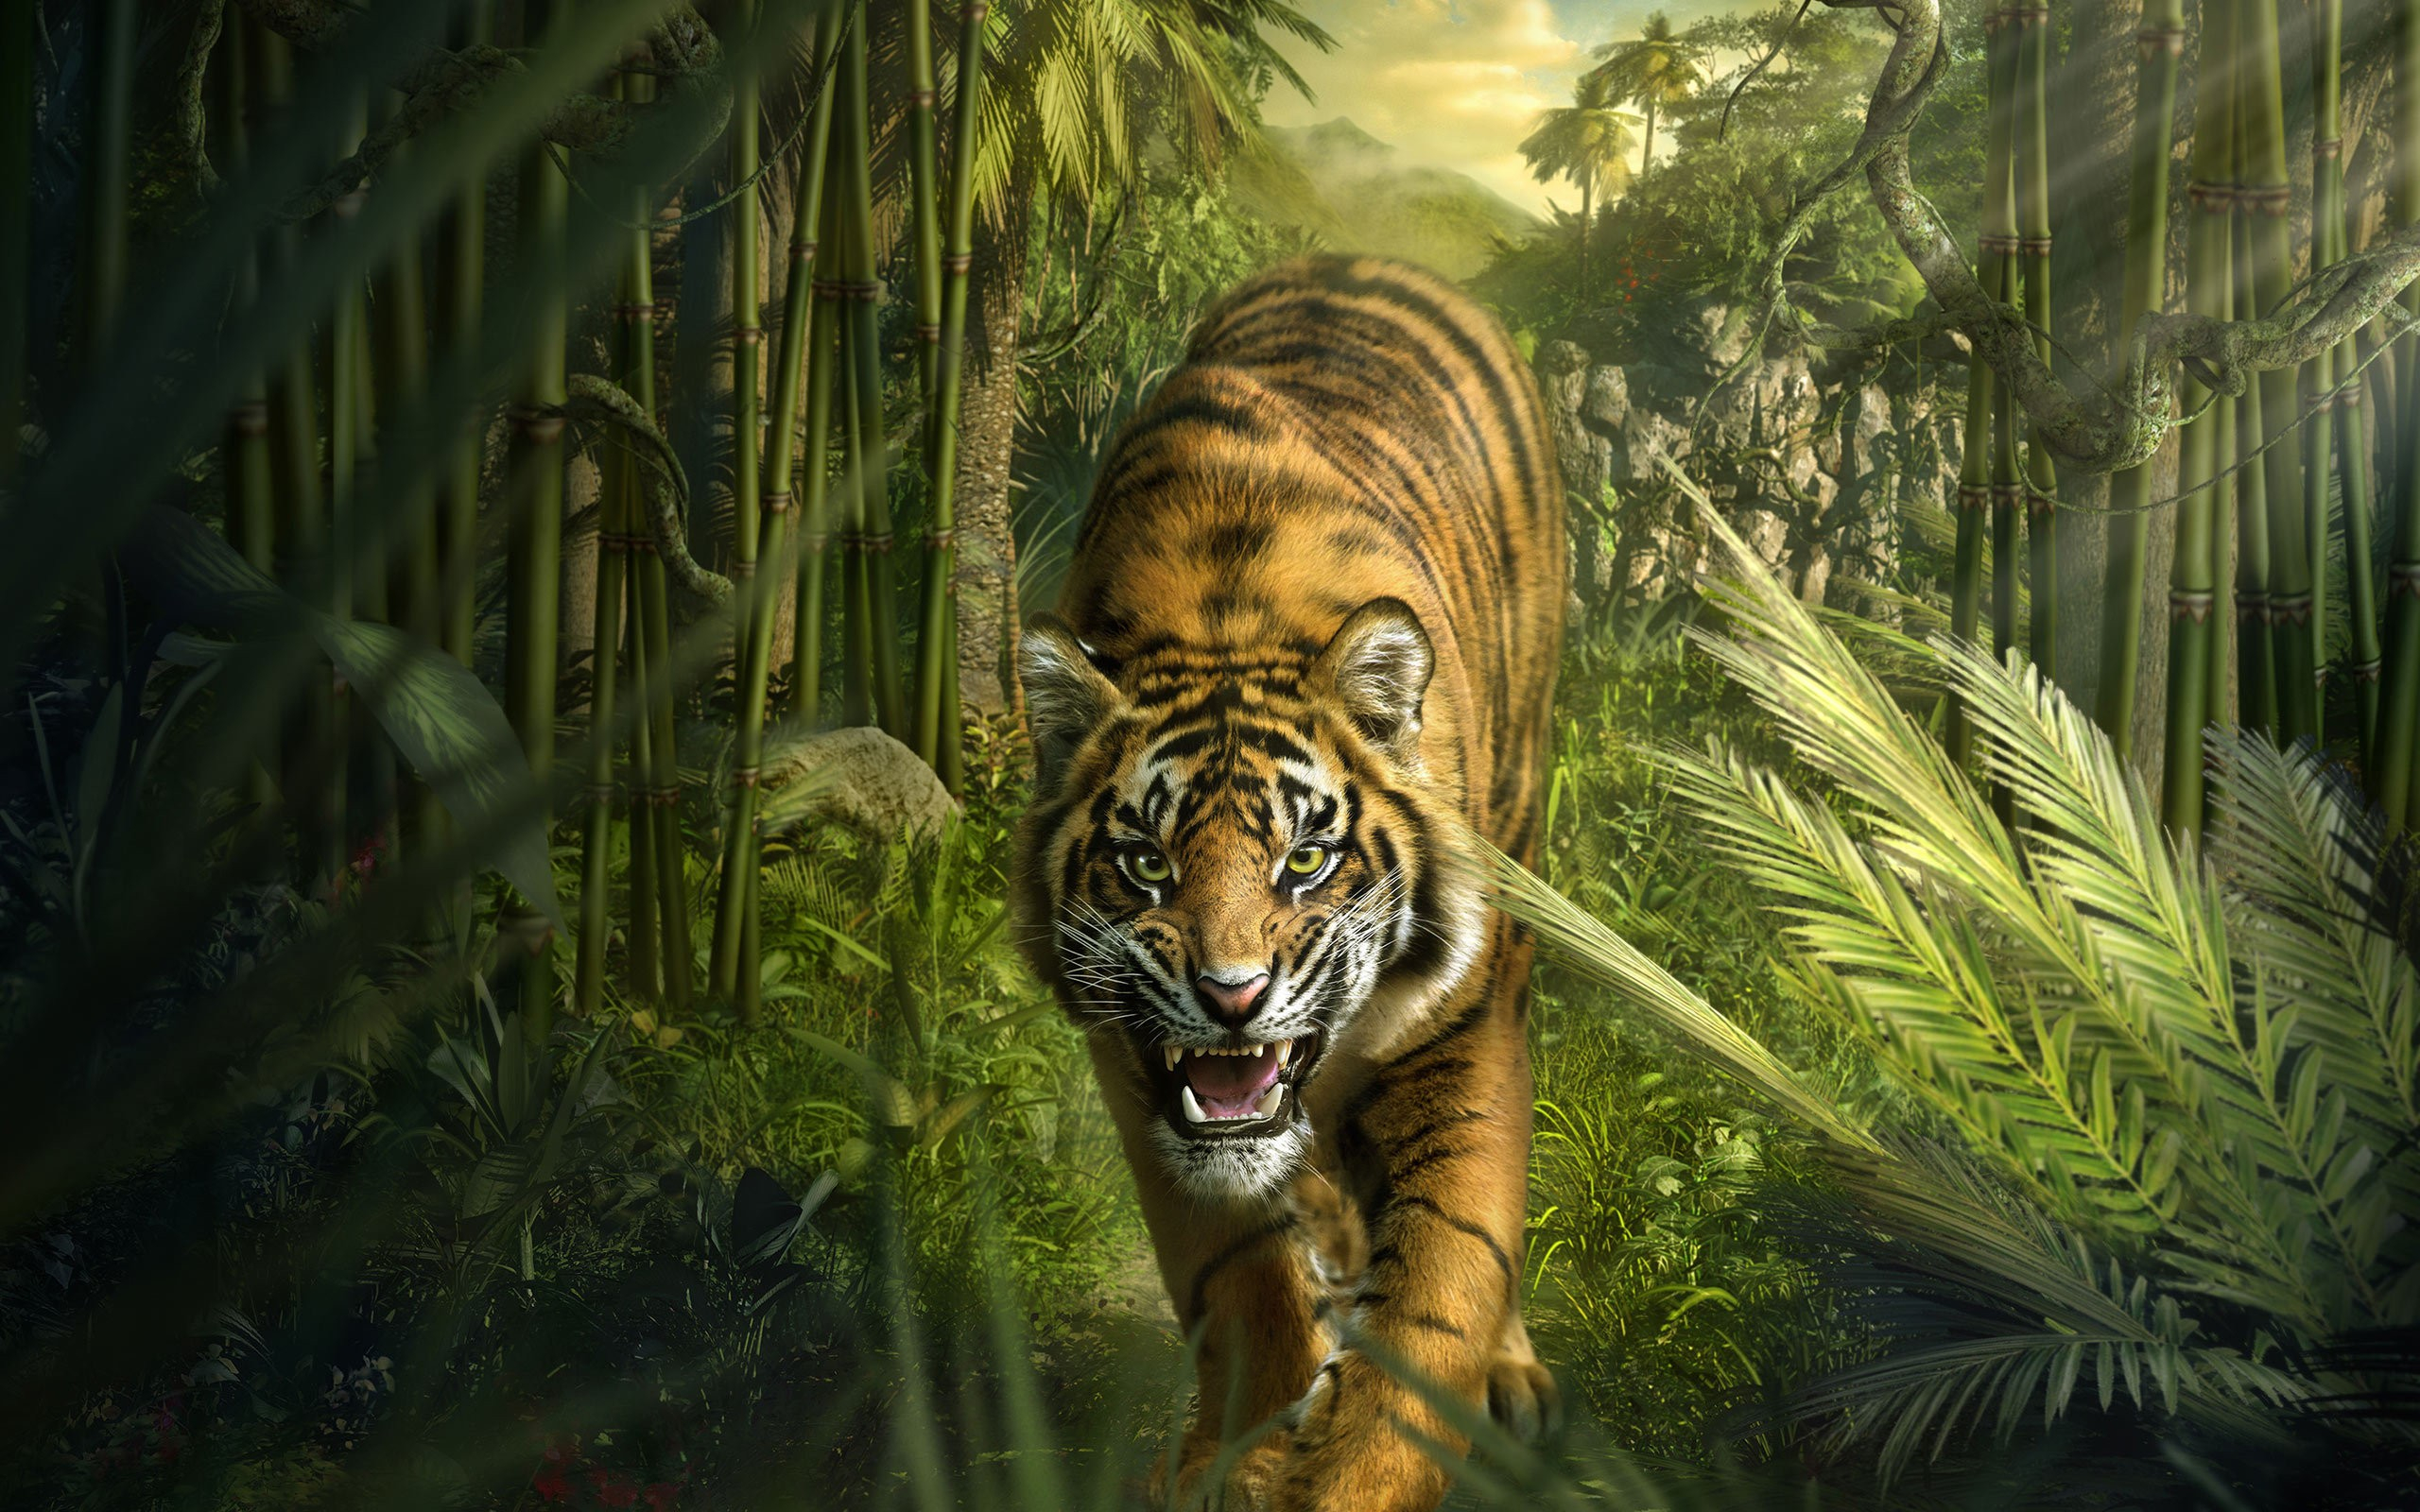 Tiger hd wallpaper background image 2560x1600 id 530686 wallpaper abyss - Tiger hd wallpaper for pc ...